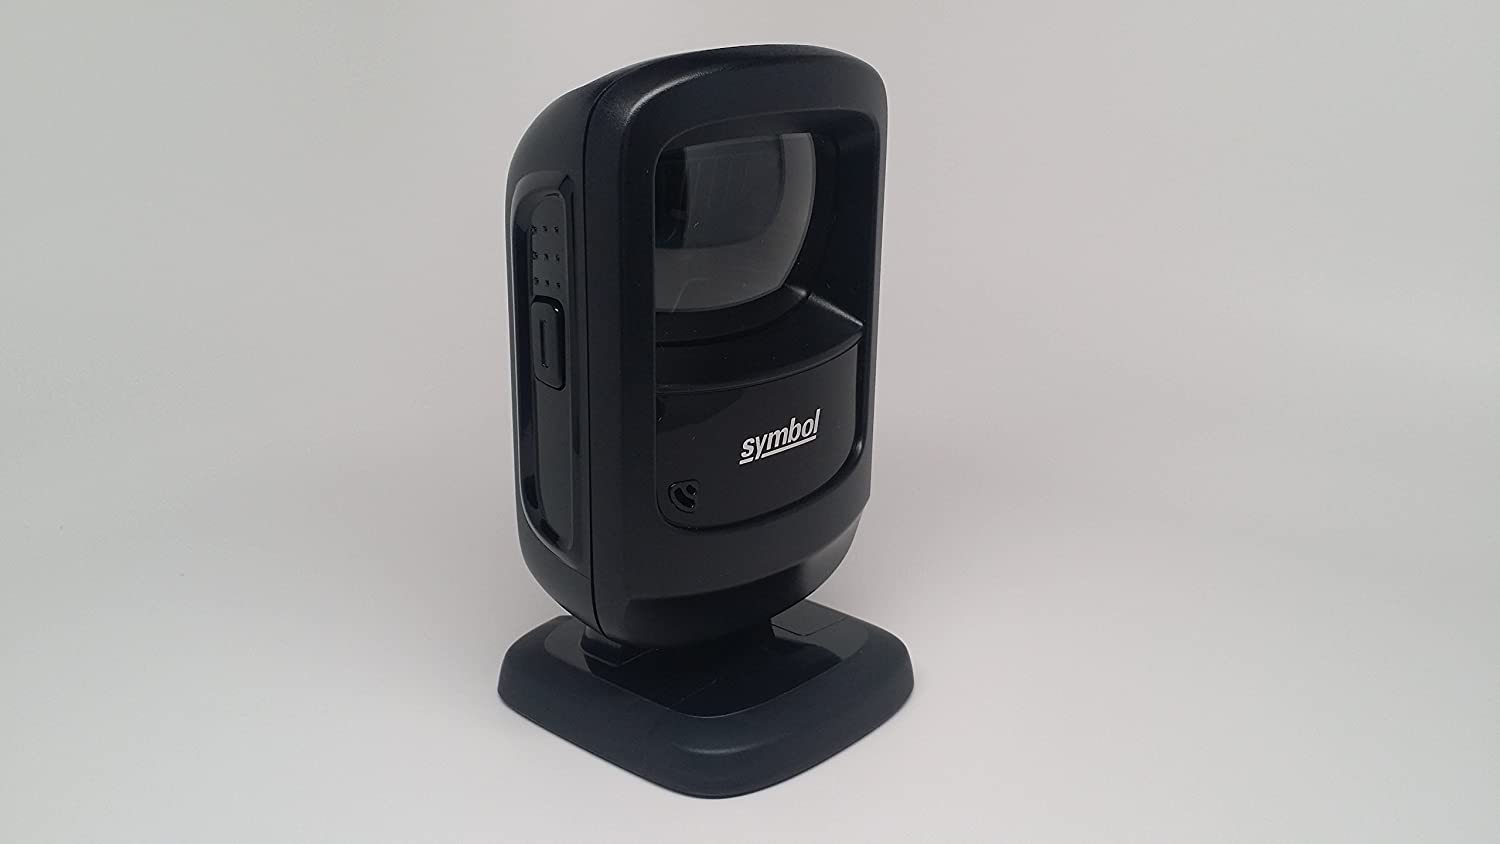 Amazon zebramotorola symbol ds9208 handheld 2d barcode amazon zebramotorola symbol ds9208 handheld 2d barcode scanner with usb cable office products biocorpaavc